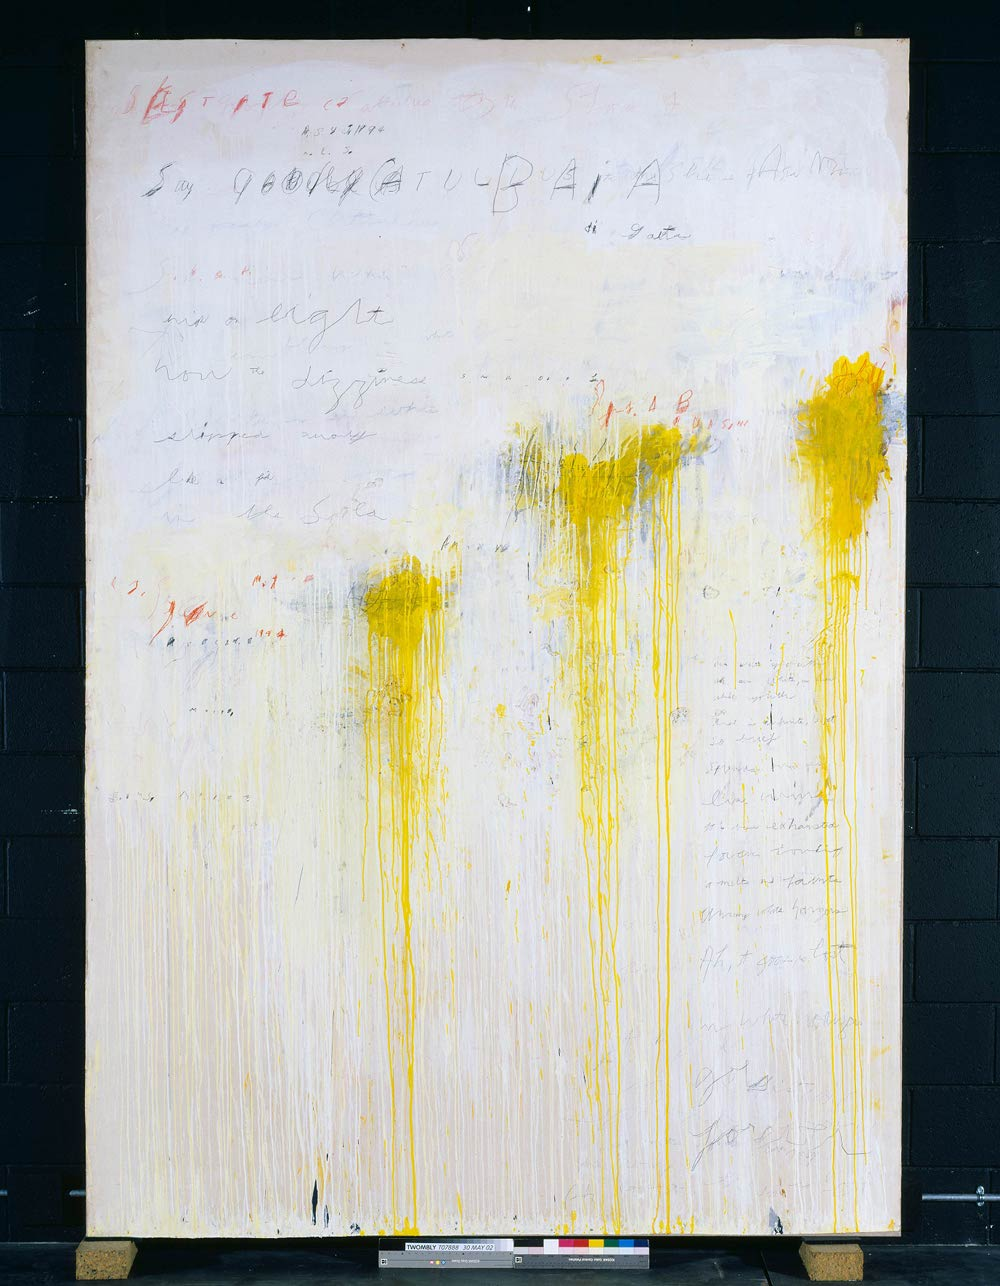 Cy Twombly, Quattro Stagioni: Estate, 1993-5, Acrylic and pencil on canvas, 3241 x 2250 x 67mm. Tate: Purchased with assistance from the American Fund for the Tate Gallery and Tate Members 2002, ©Tate, London, 2010, © Cy Twombly